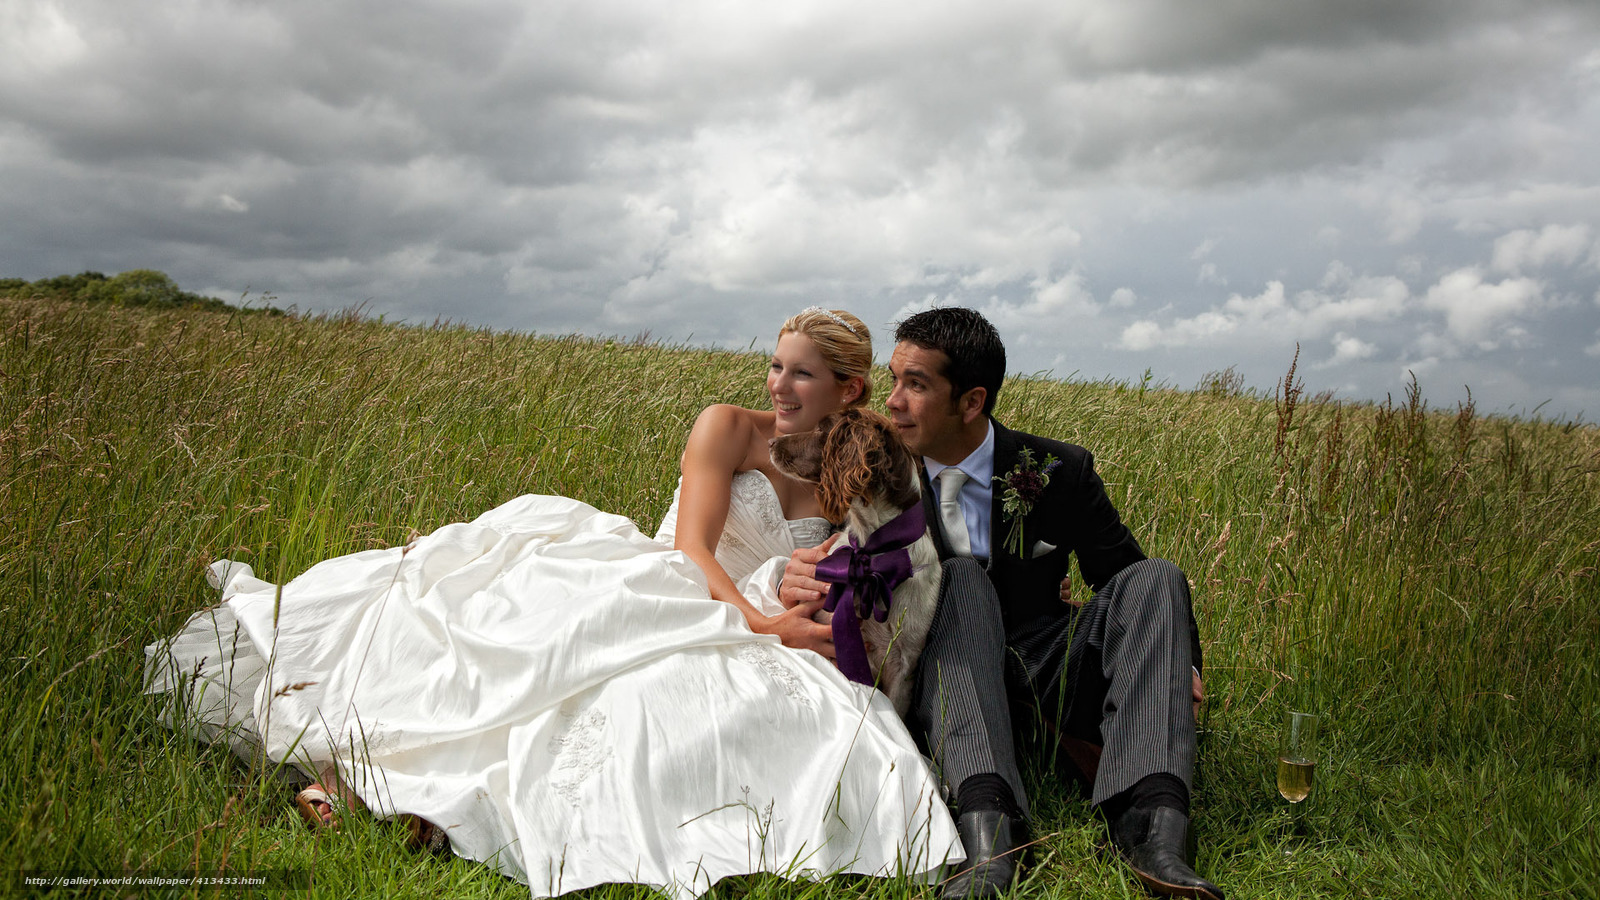 Download wallpaper wedding,  field,  dog,  two free desktop wallpaper in the resolution 1920x1080 — picture №413433